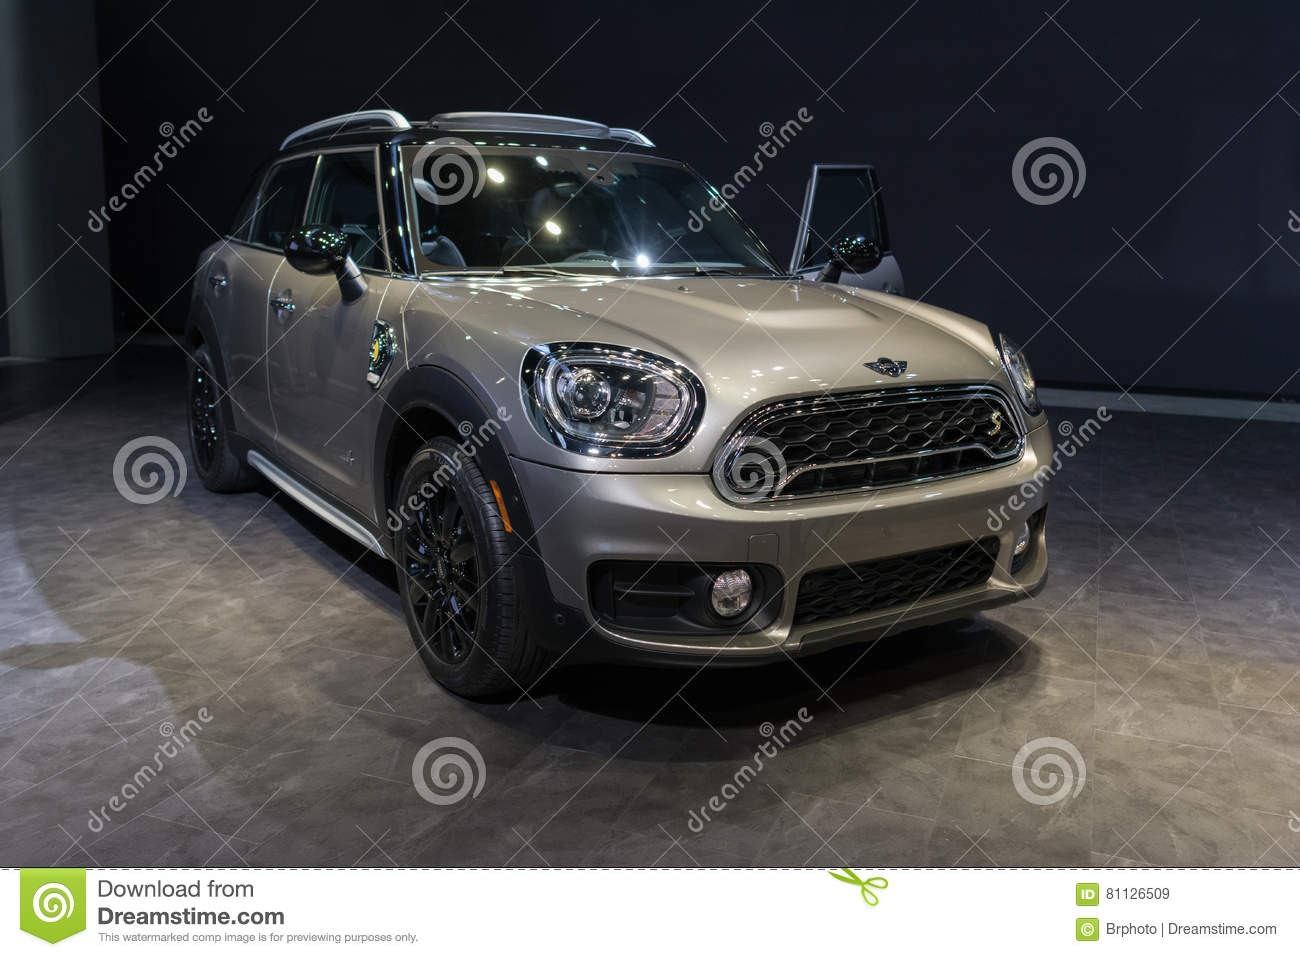 Mini Cooper Clubman S Editorial Stock Image Image Of Power 81126509